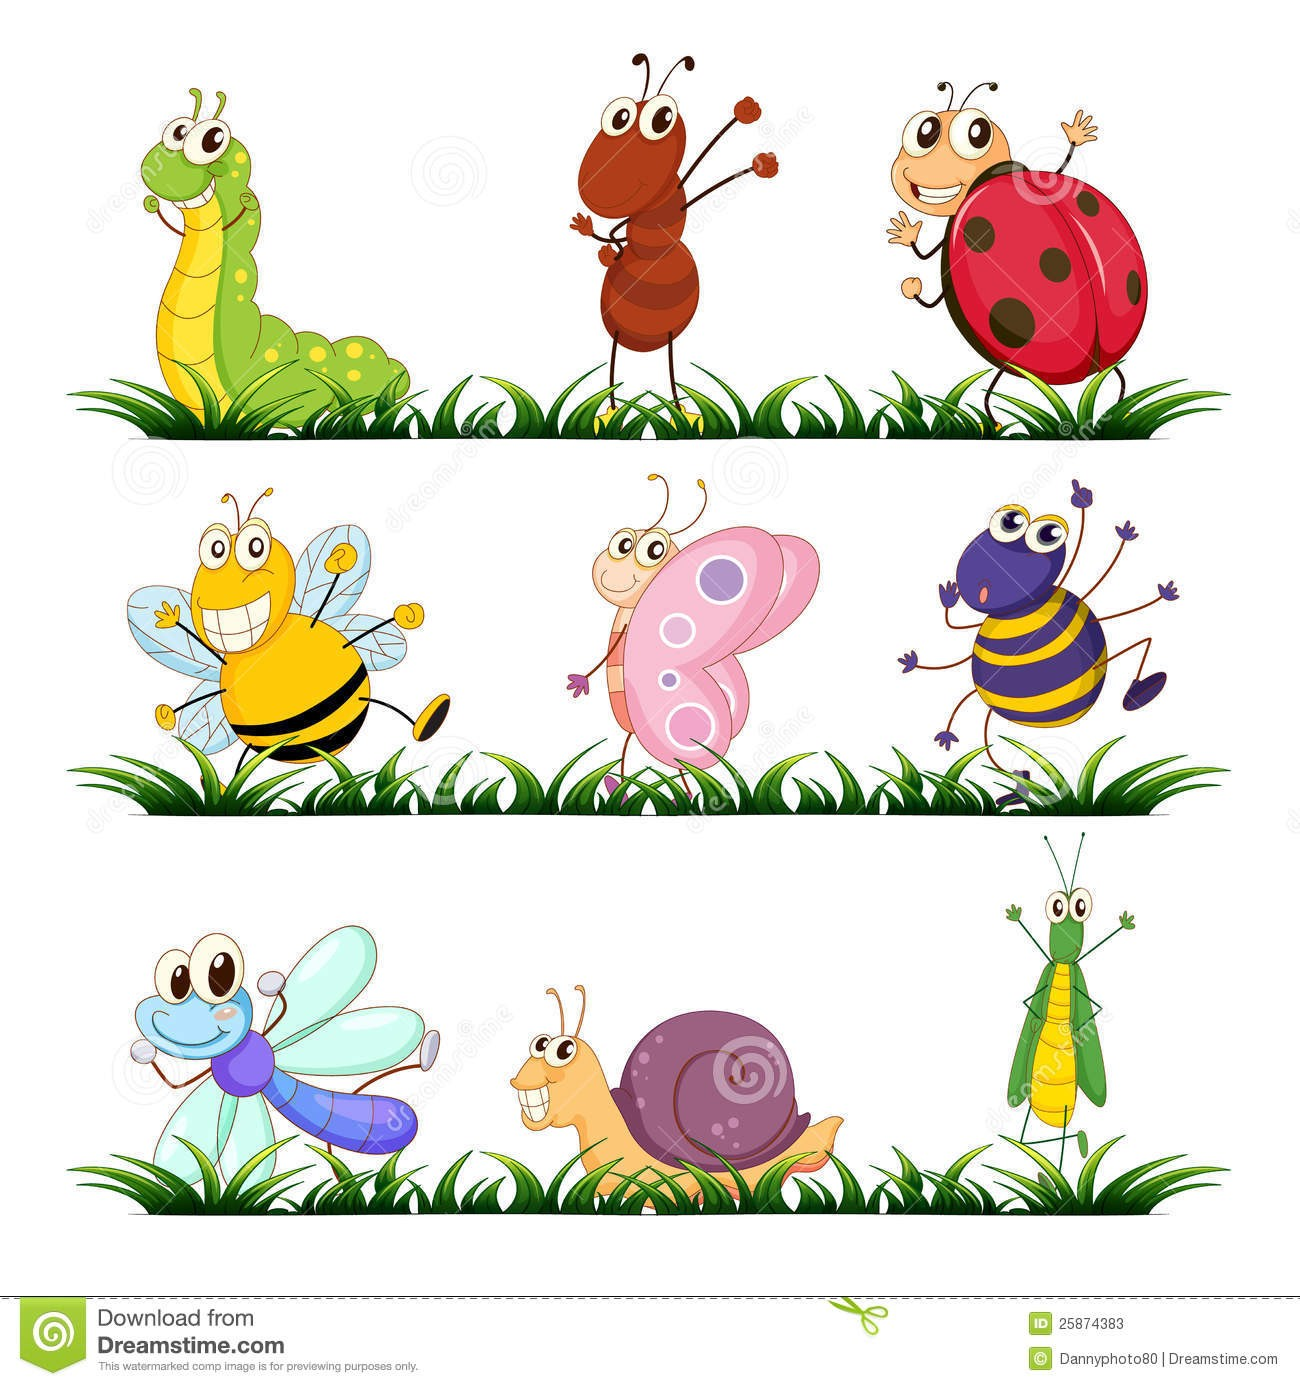 Small animals clipart clip art library Within Small Animals Clipart Ant Animal 1   Clip Art clip art library